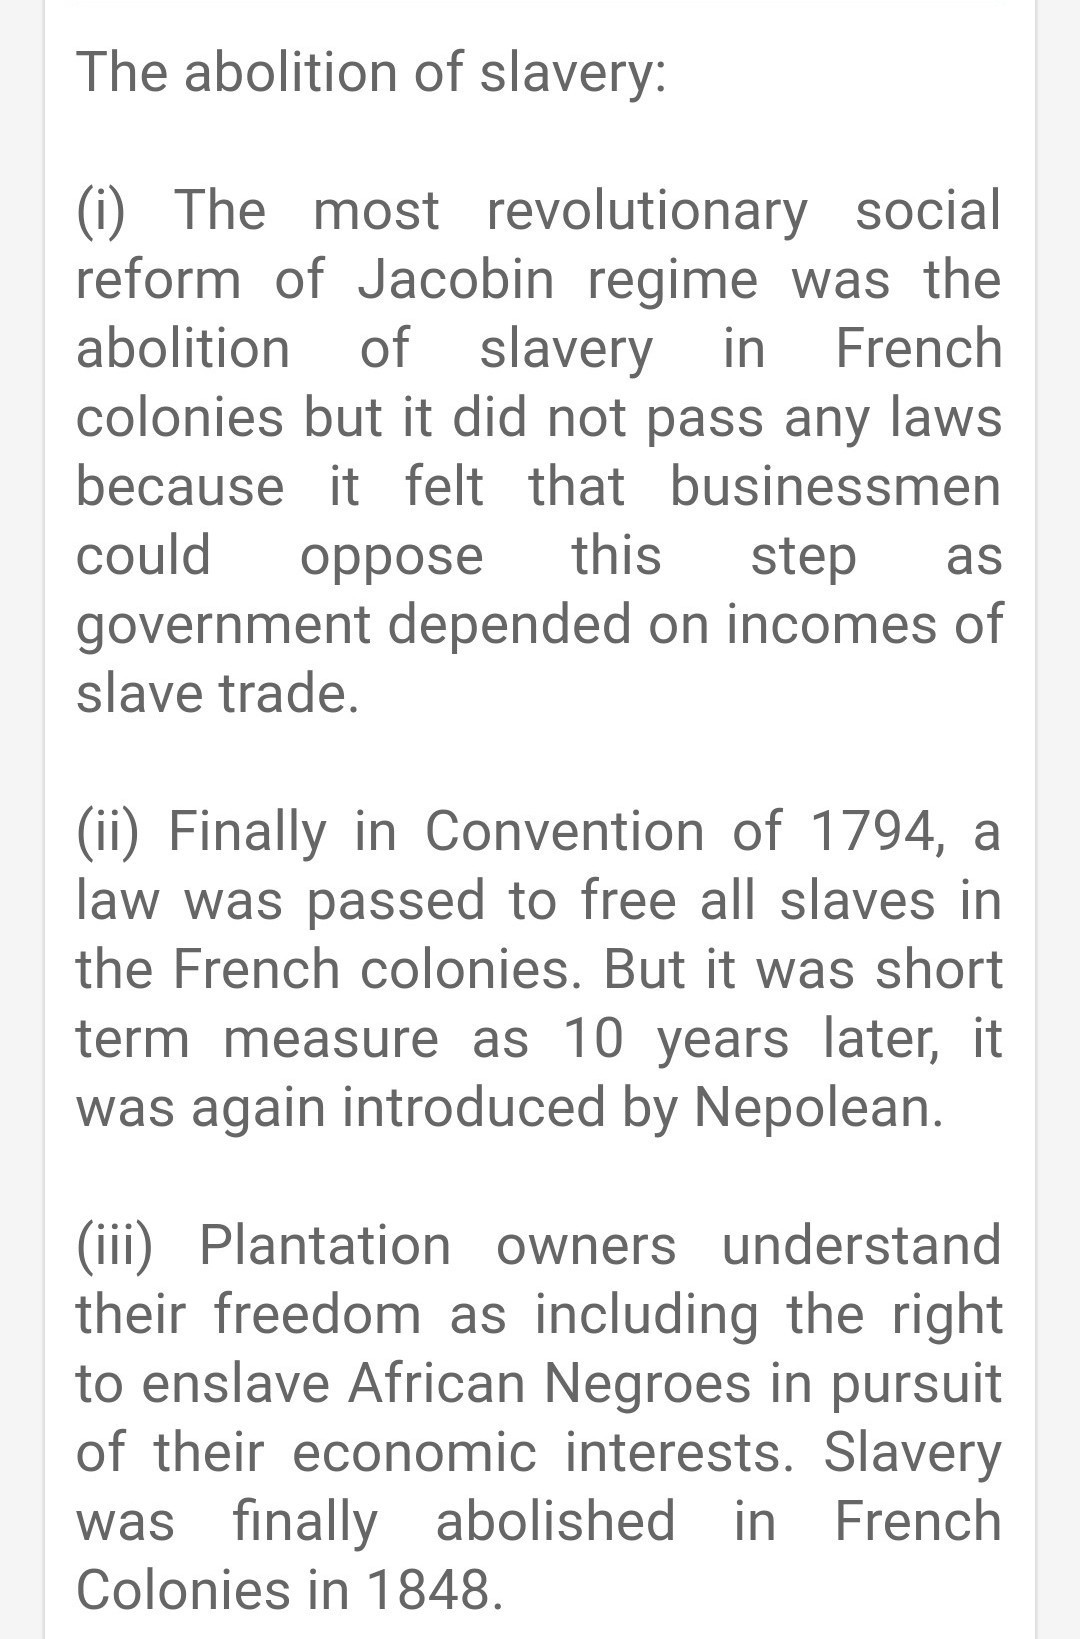 When was slavery finally abolished in france